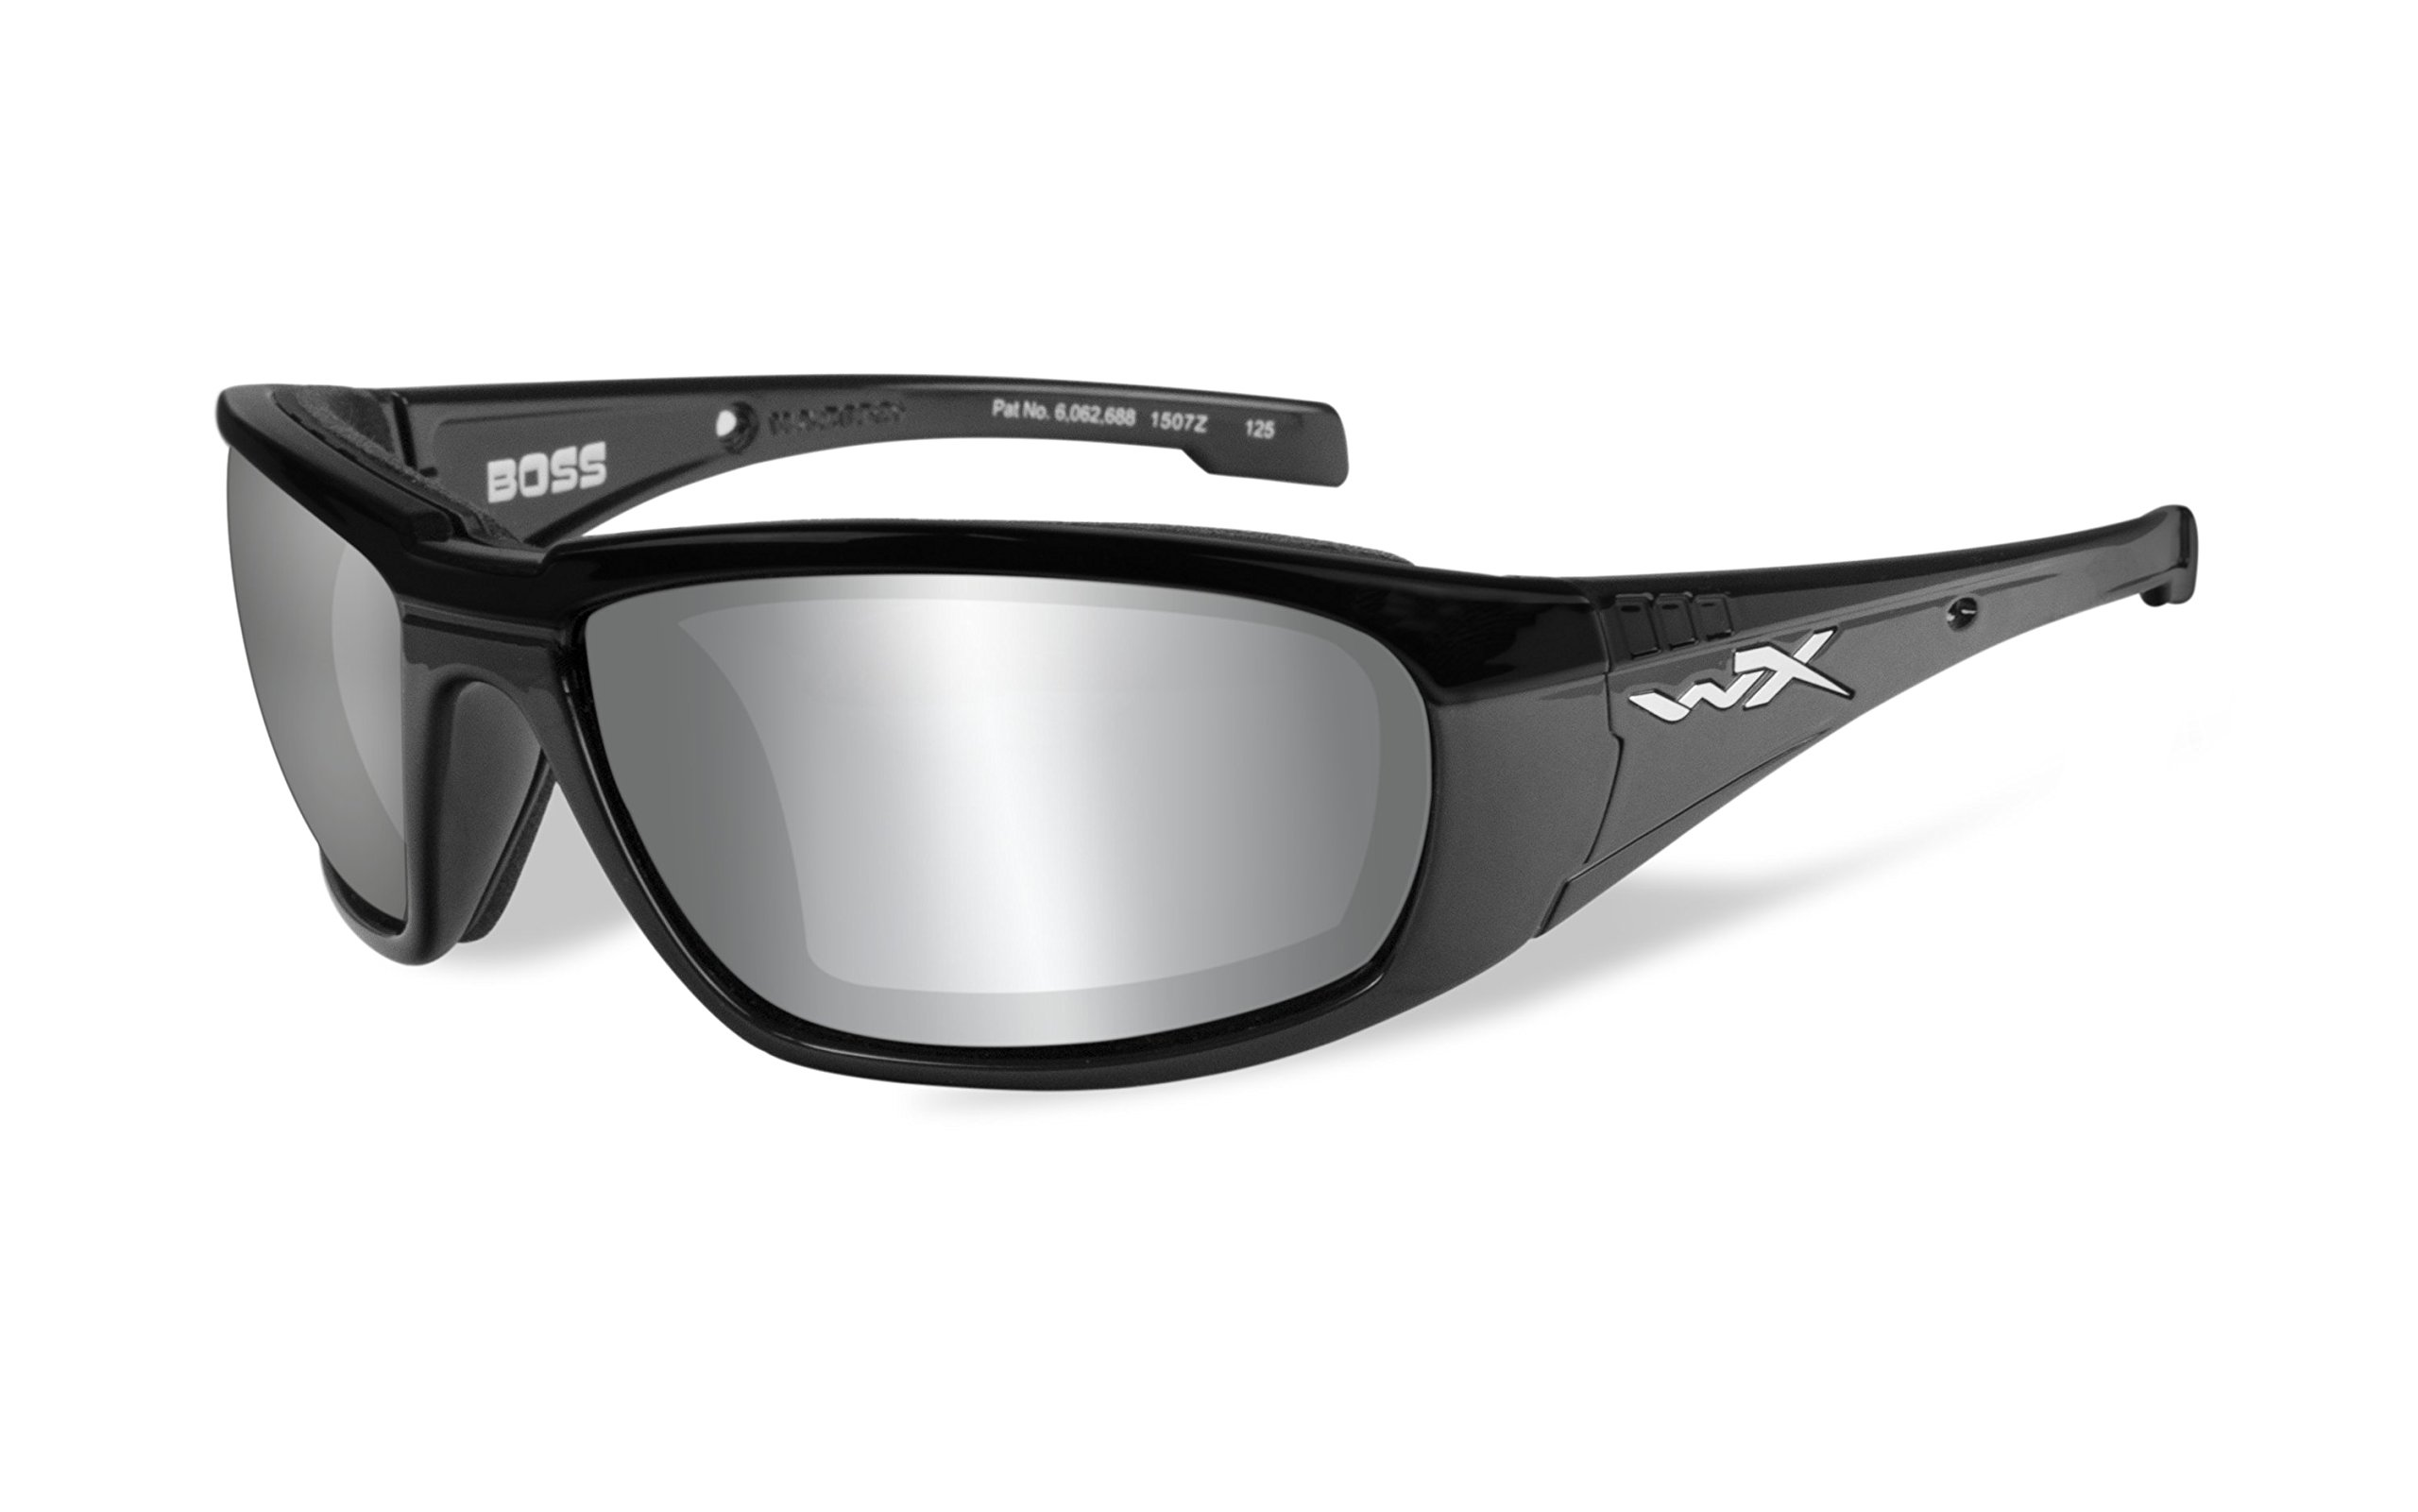 Wiley X Boss SMK Gry/Blk Frame by Wiley X